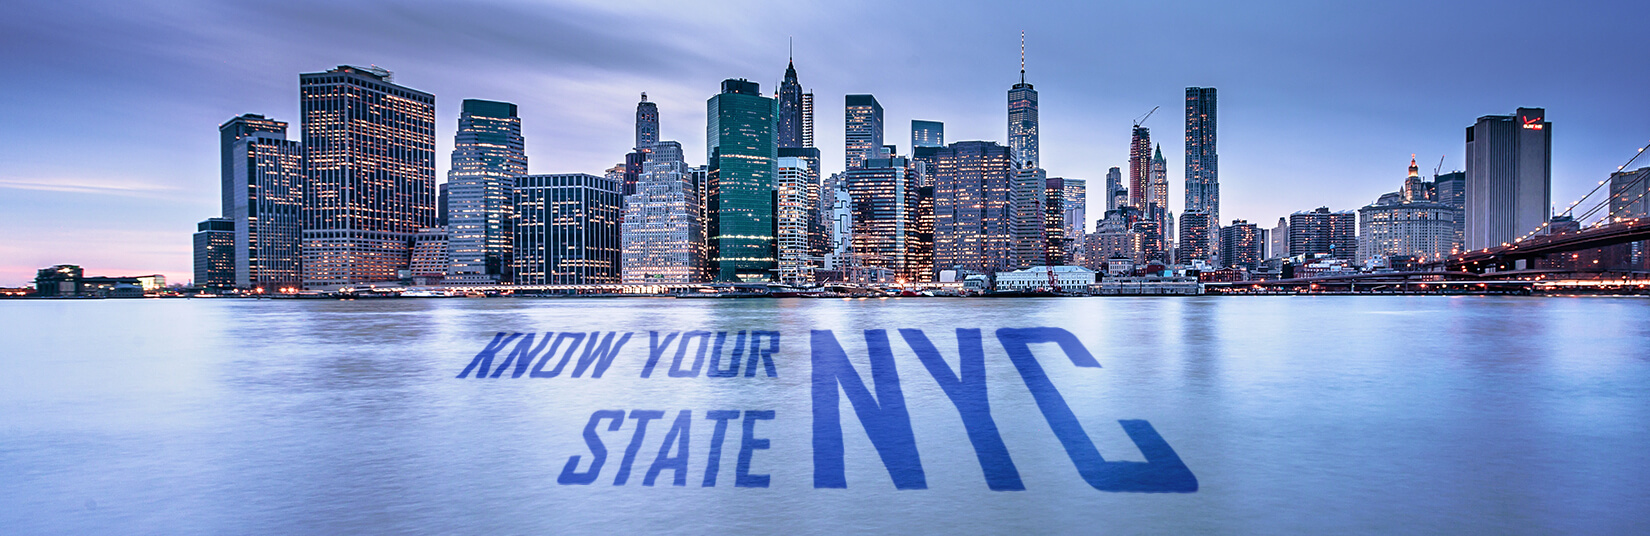 LetsNurture Series – Know Your State – New York